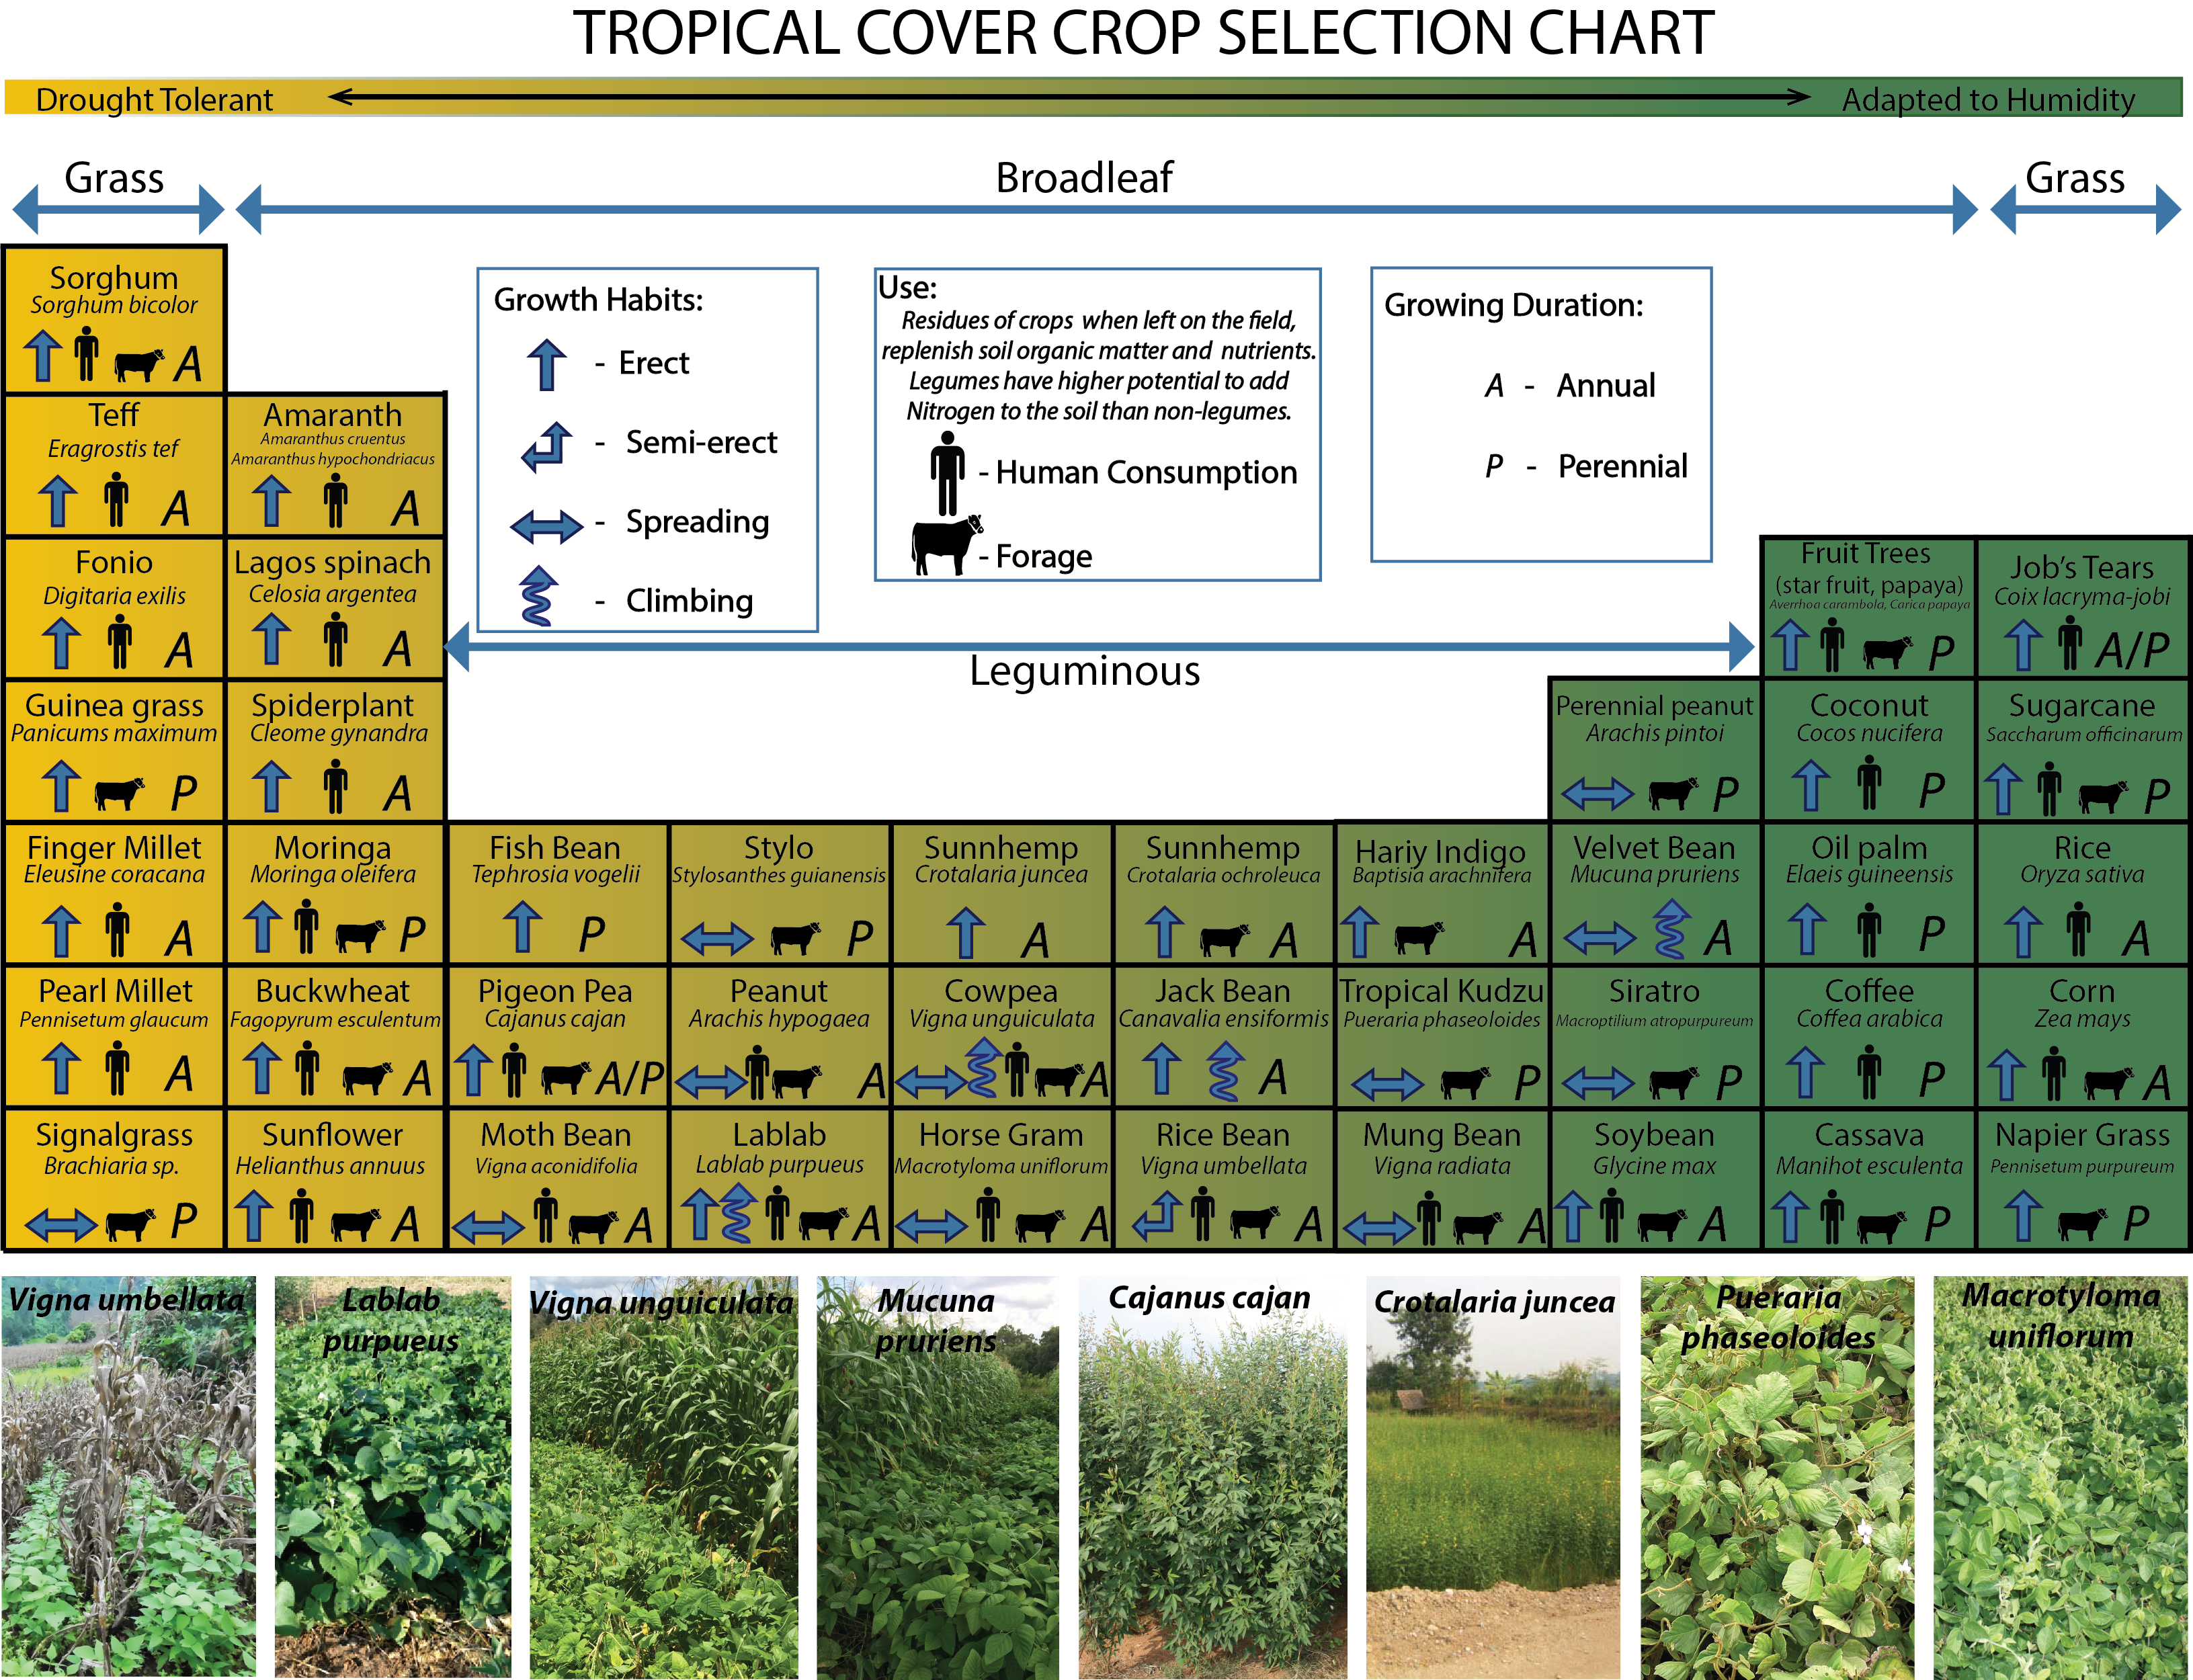 Tropical Cover Crop Selection Chart